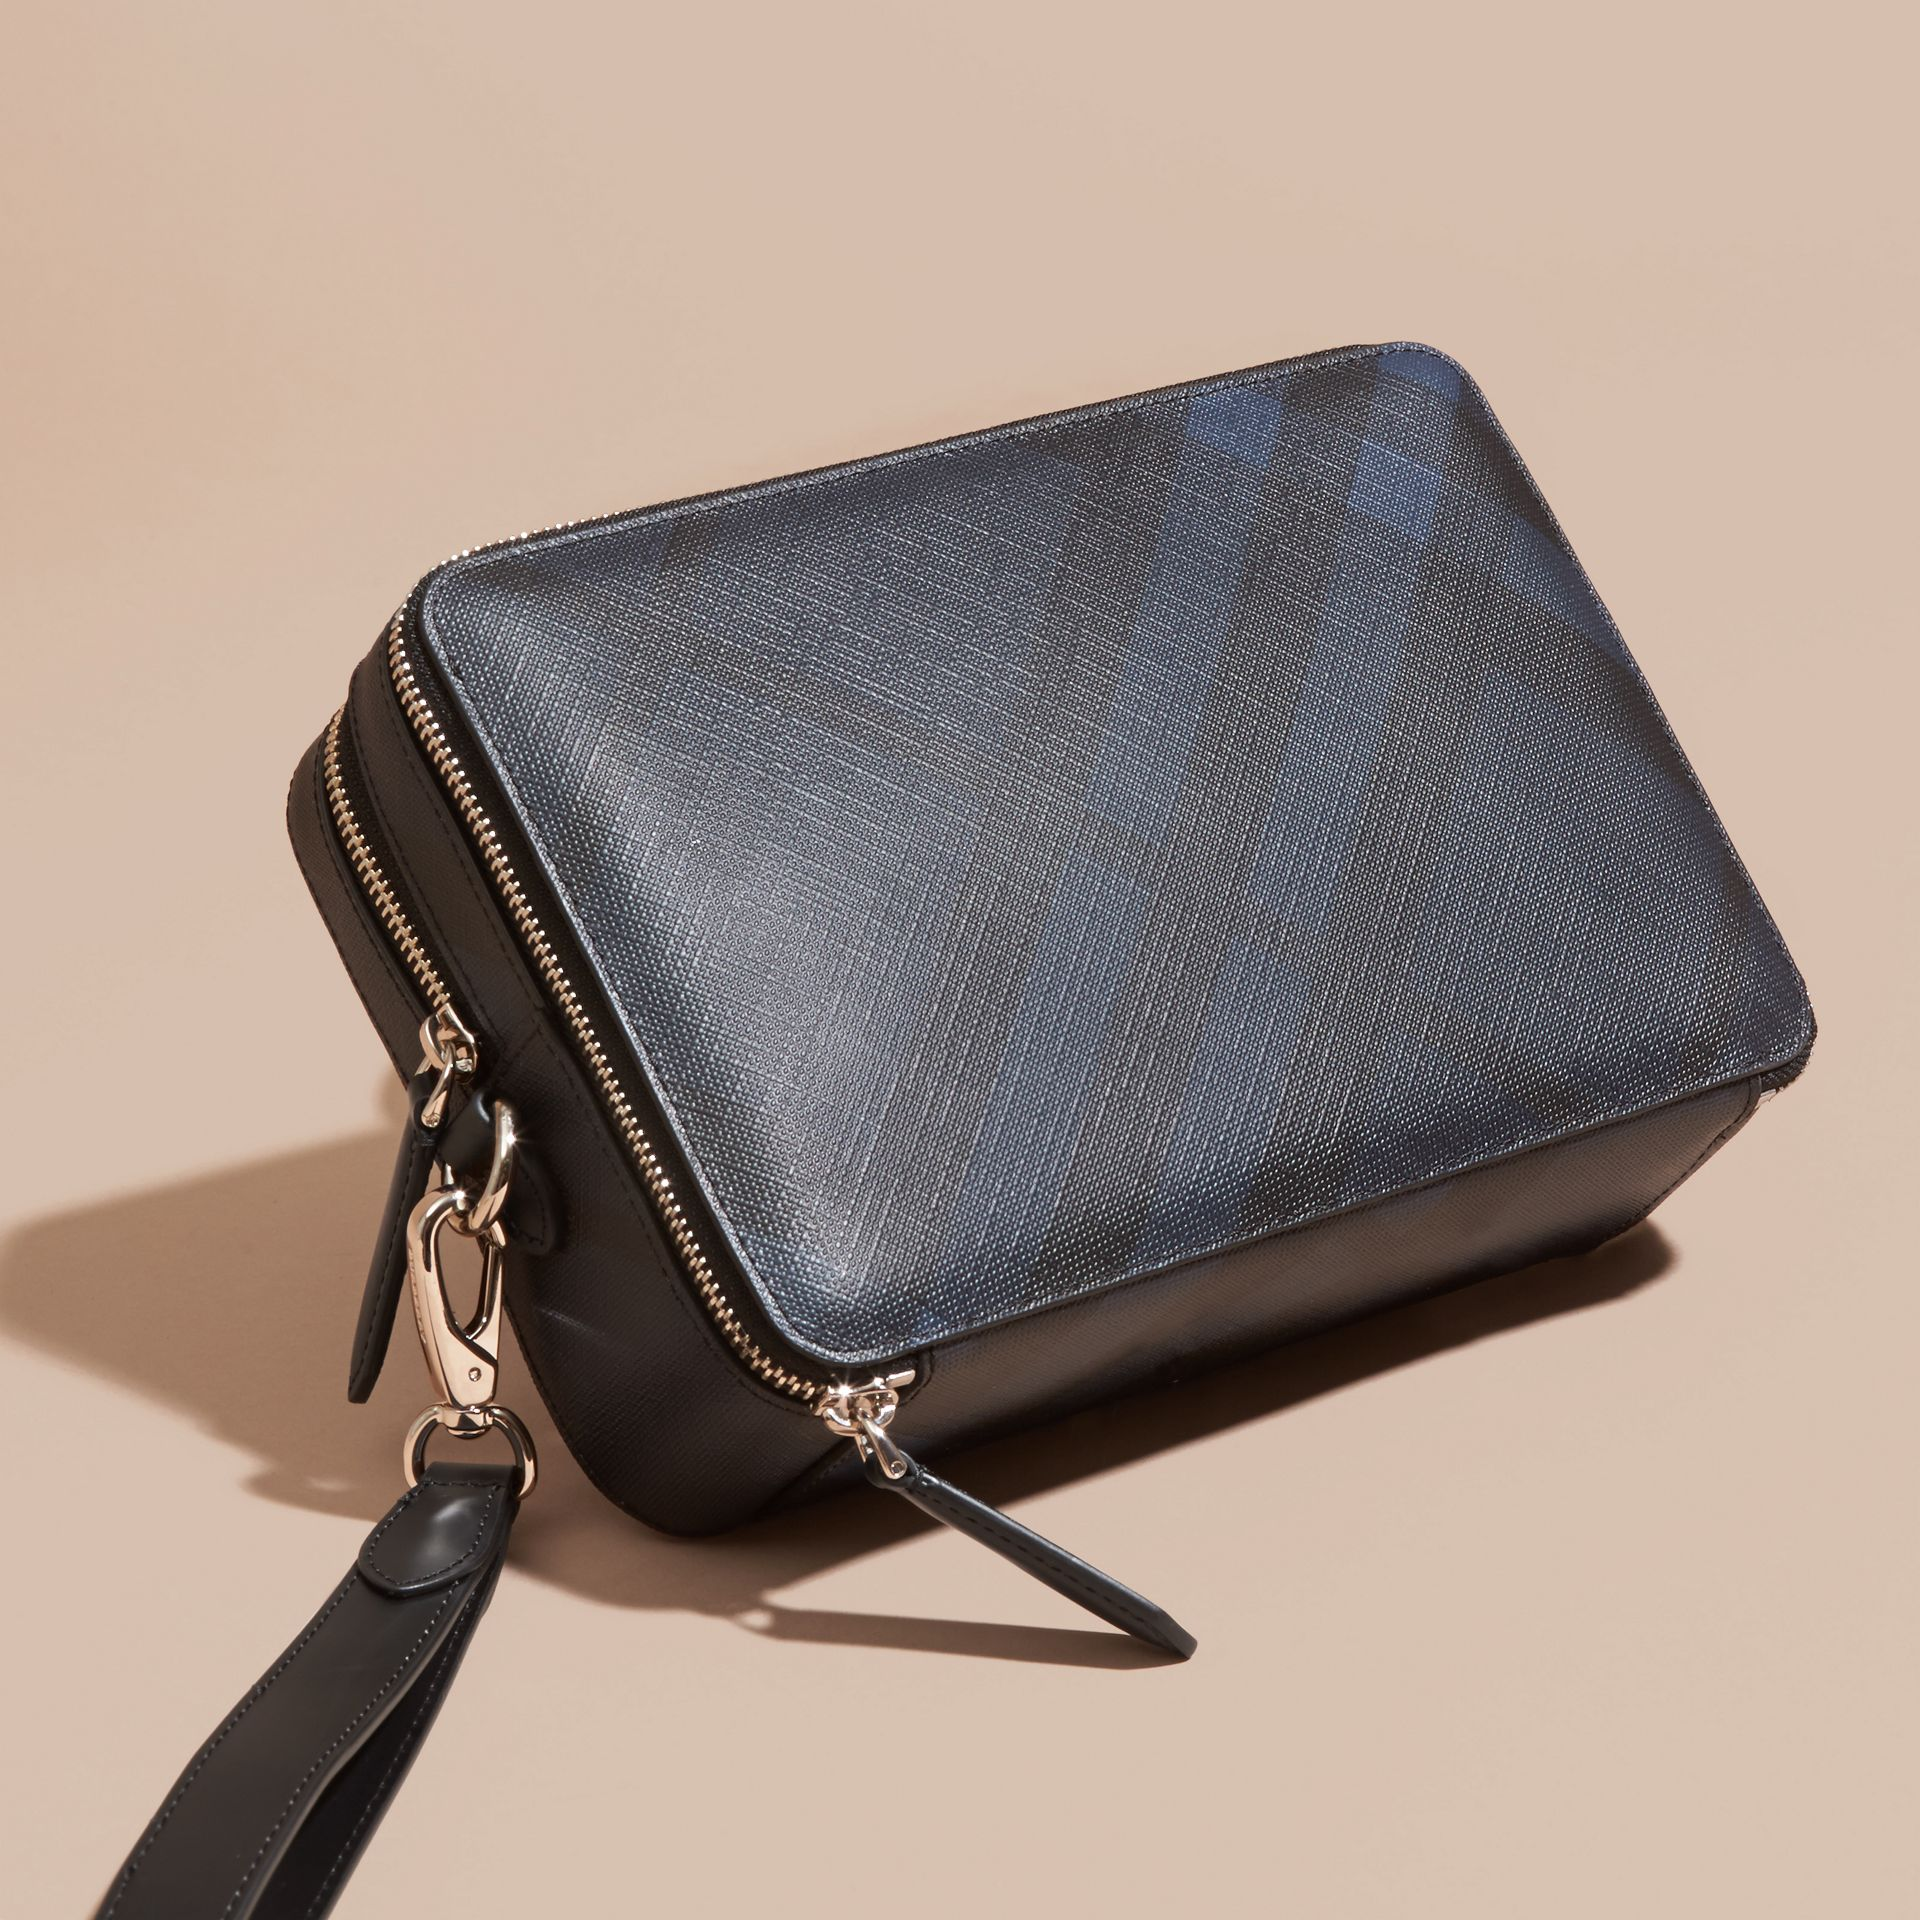 Leather-trimmed London Check Pouch in Navy/black - Men | Burberry Canada - gallery image 5